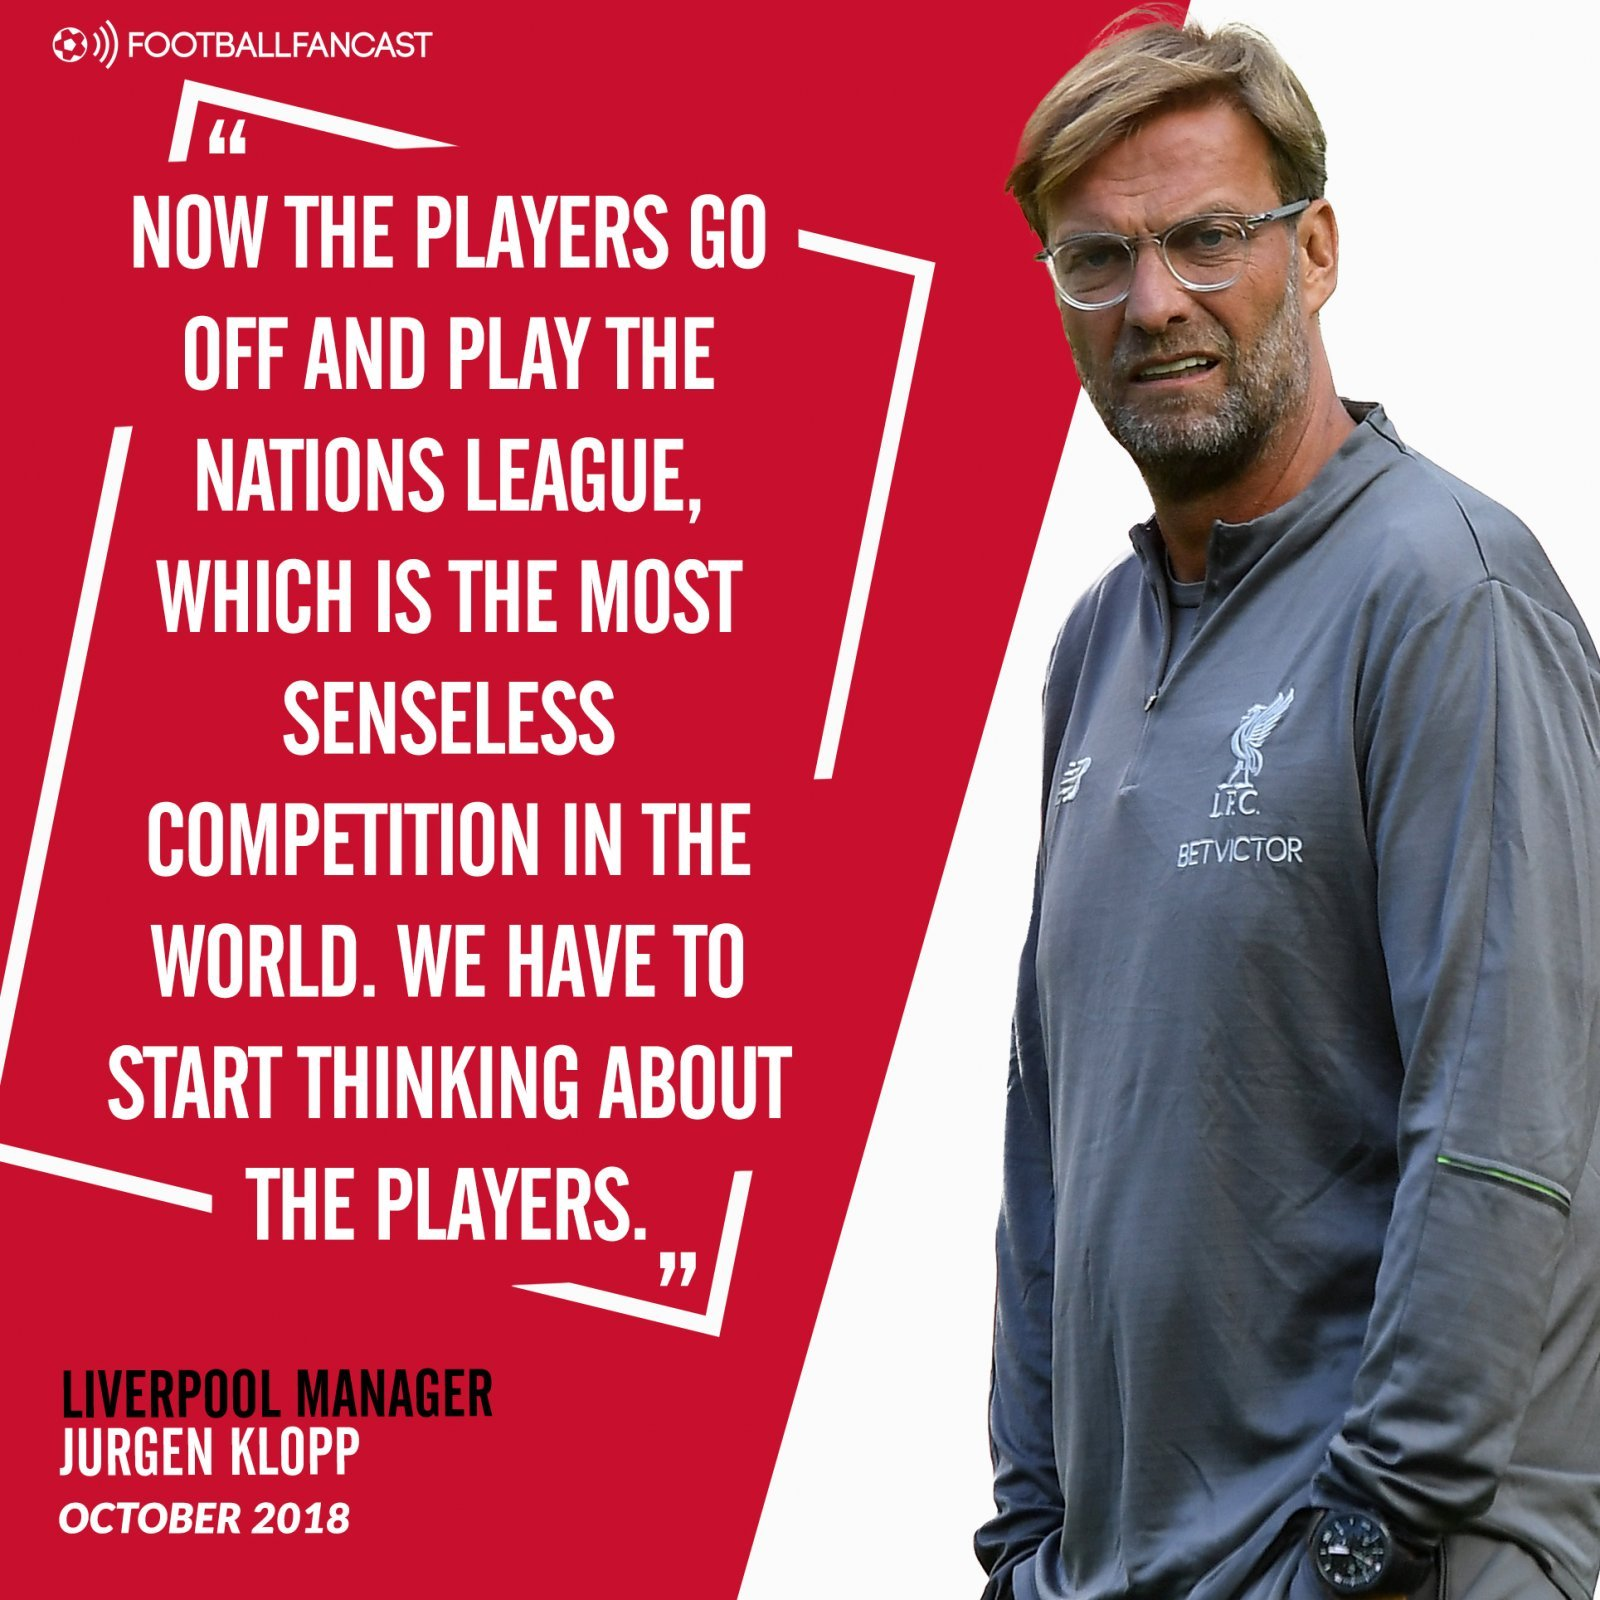 Jurgen Klopp's quotes on the Nations League